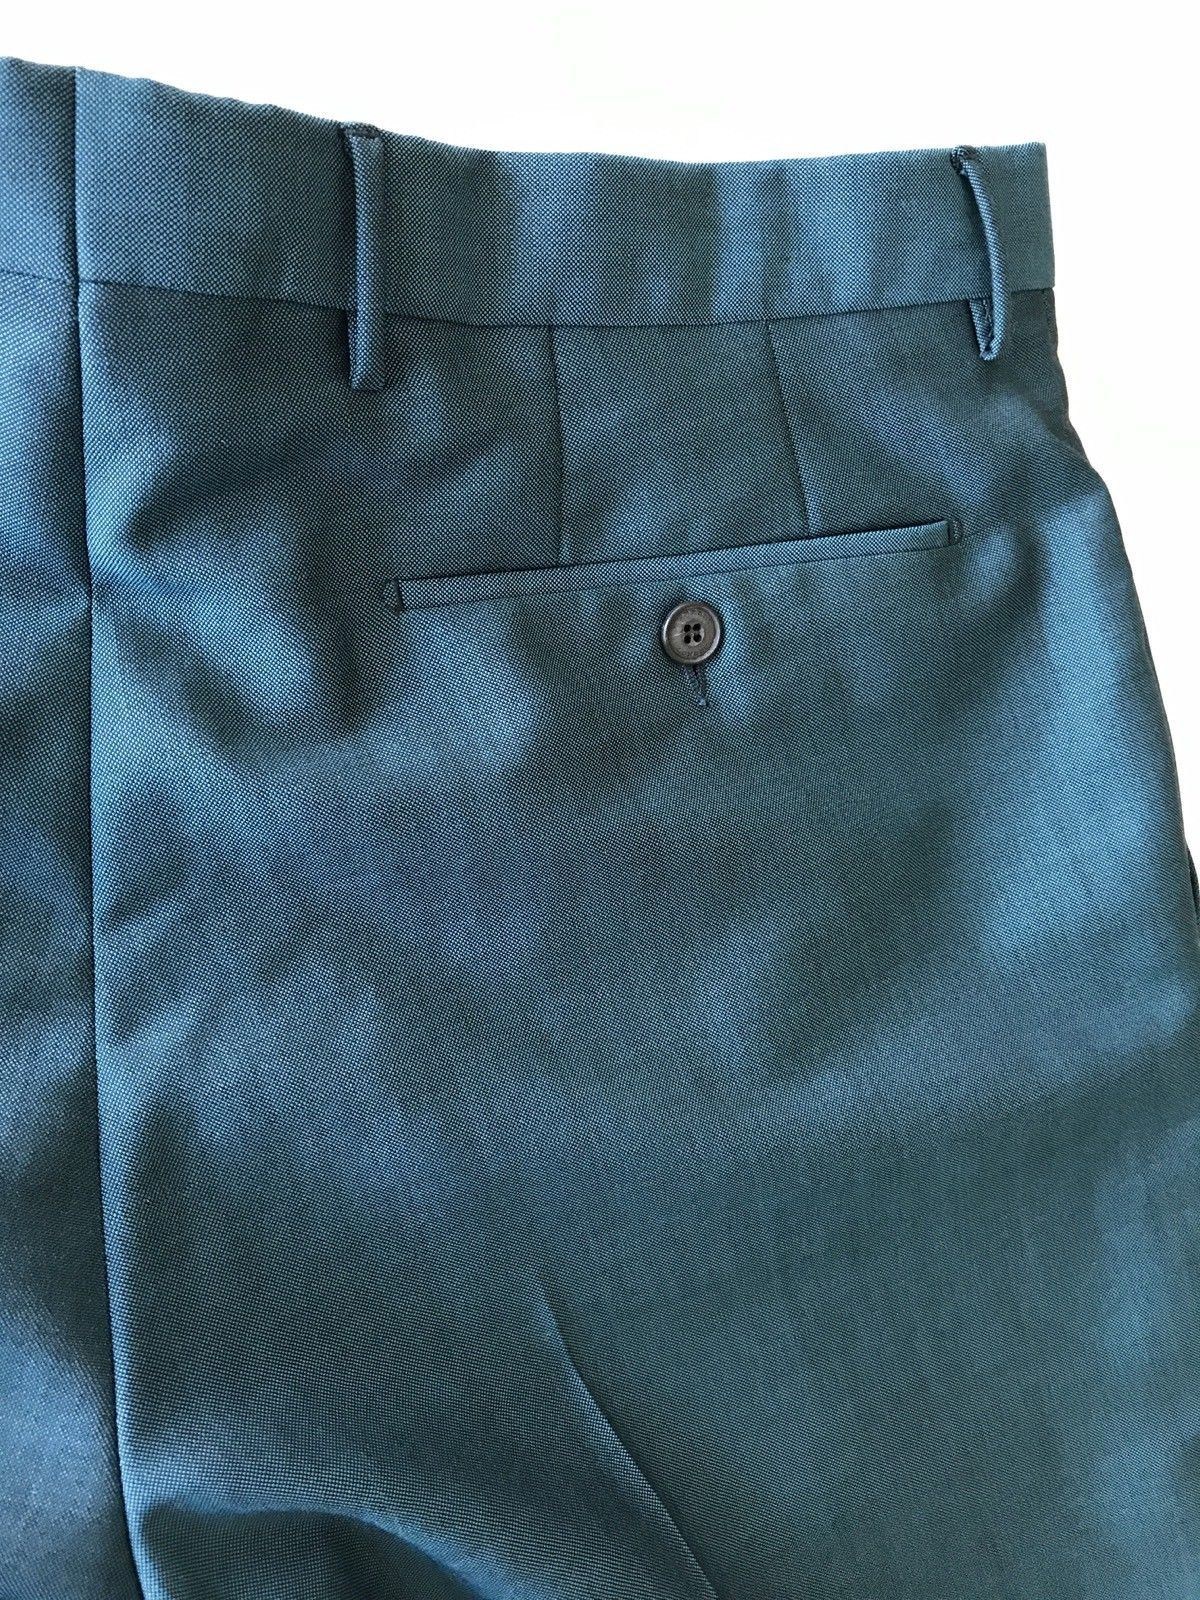 NWT $395 Burberry Mens Dark Teal Wool Dress Pants Size 42 US (52 Euro) Portugal